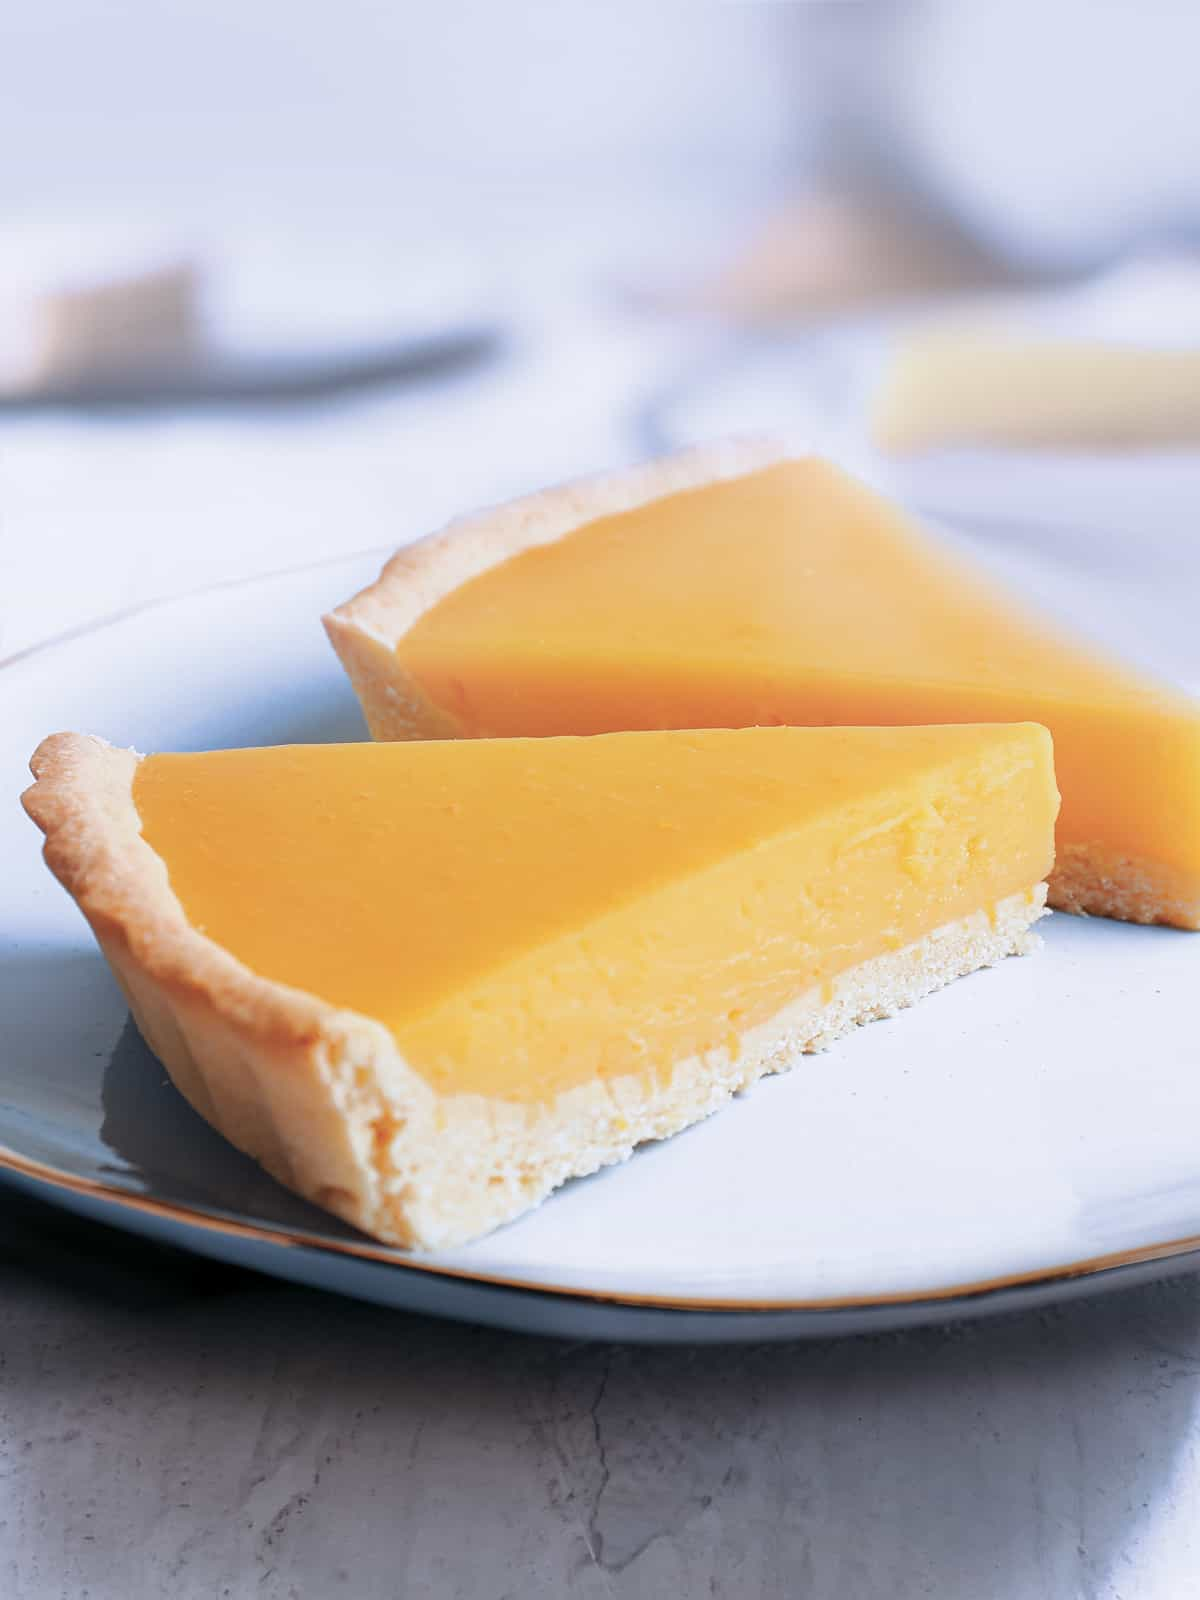 Two pieces of lemon tart on a plate.